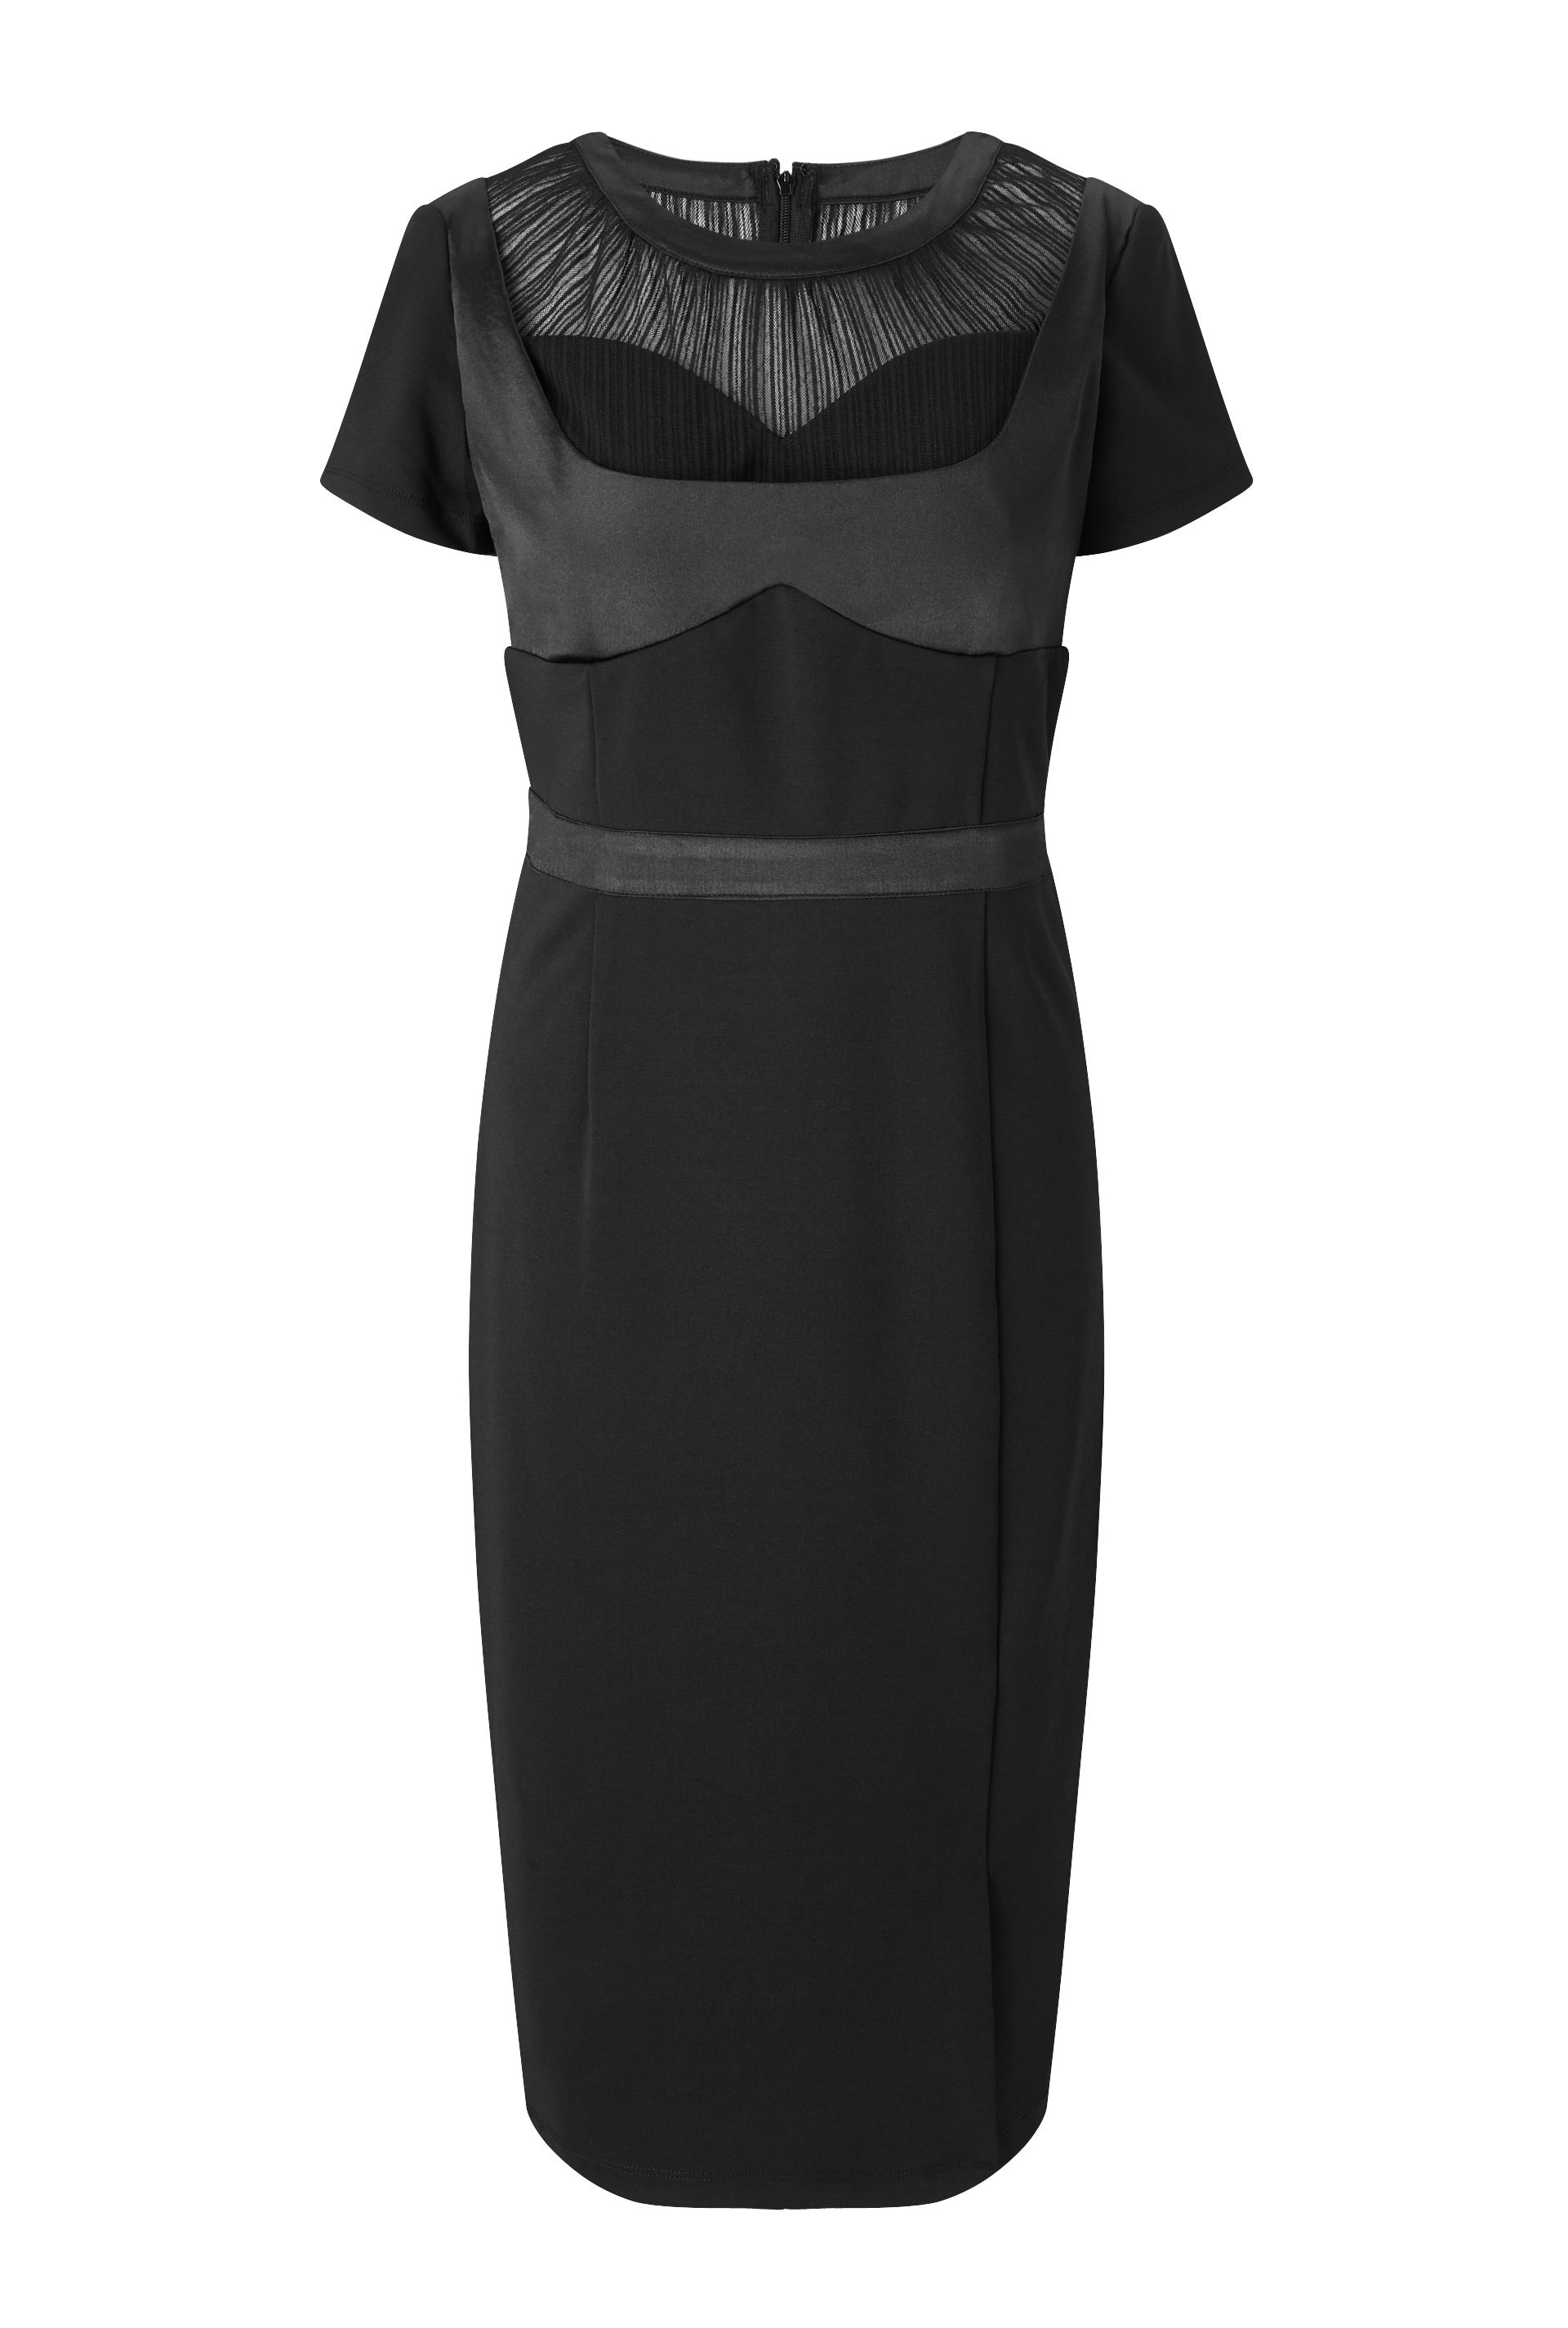 James Lakeland Evening Lbd, Black